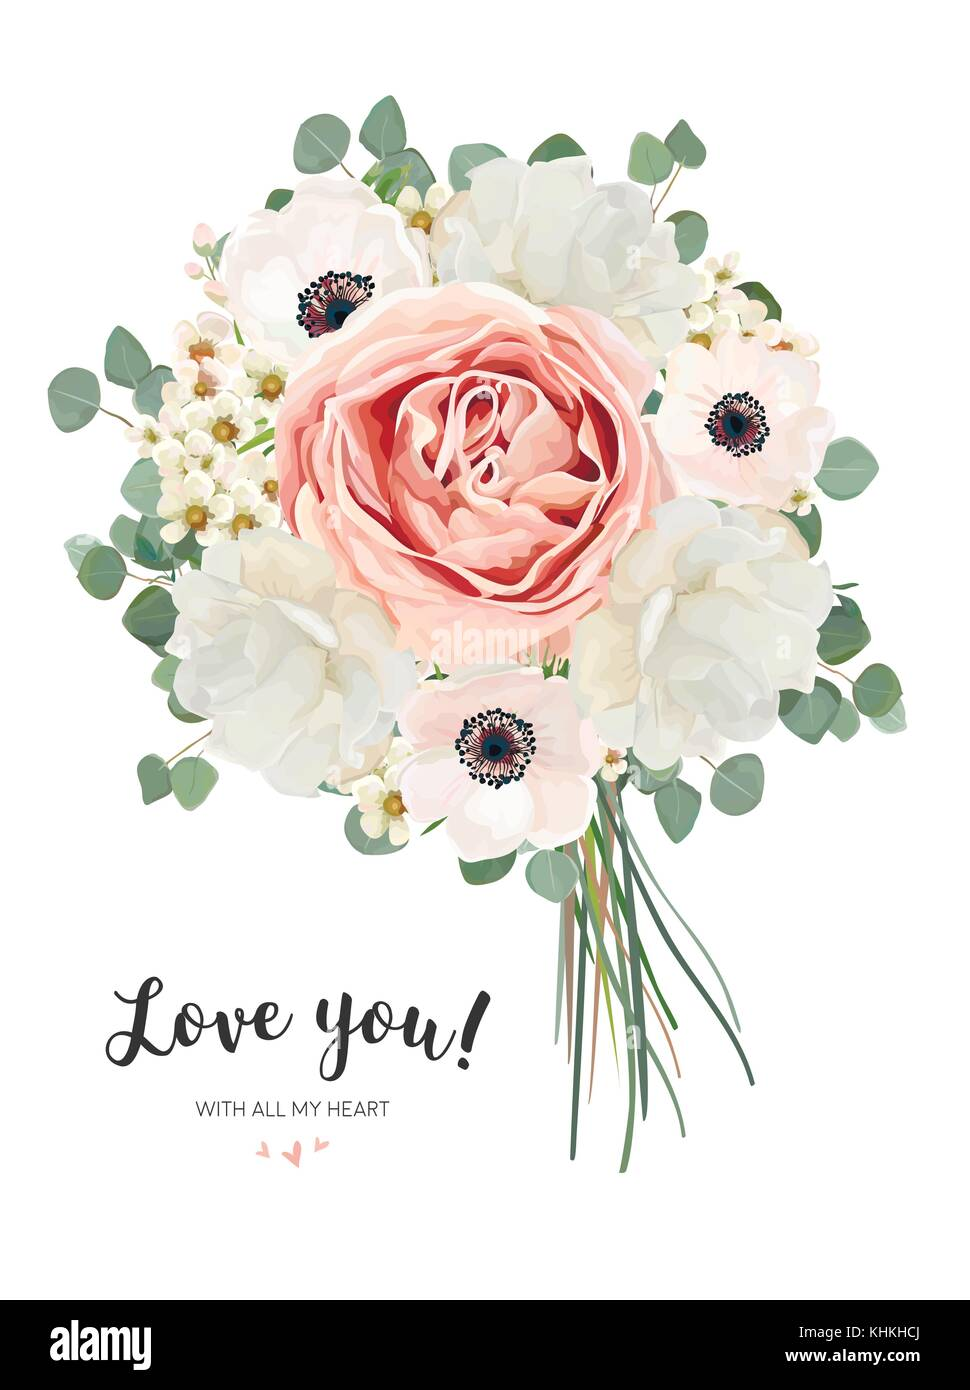 Wax creamy flowers stock photos wax creamy flowers stock images flower bouquet floral bunch vector card design with bouquet of peach pale pink anemone izmirmasajfo